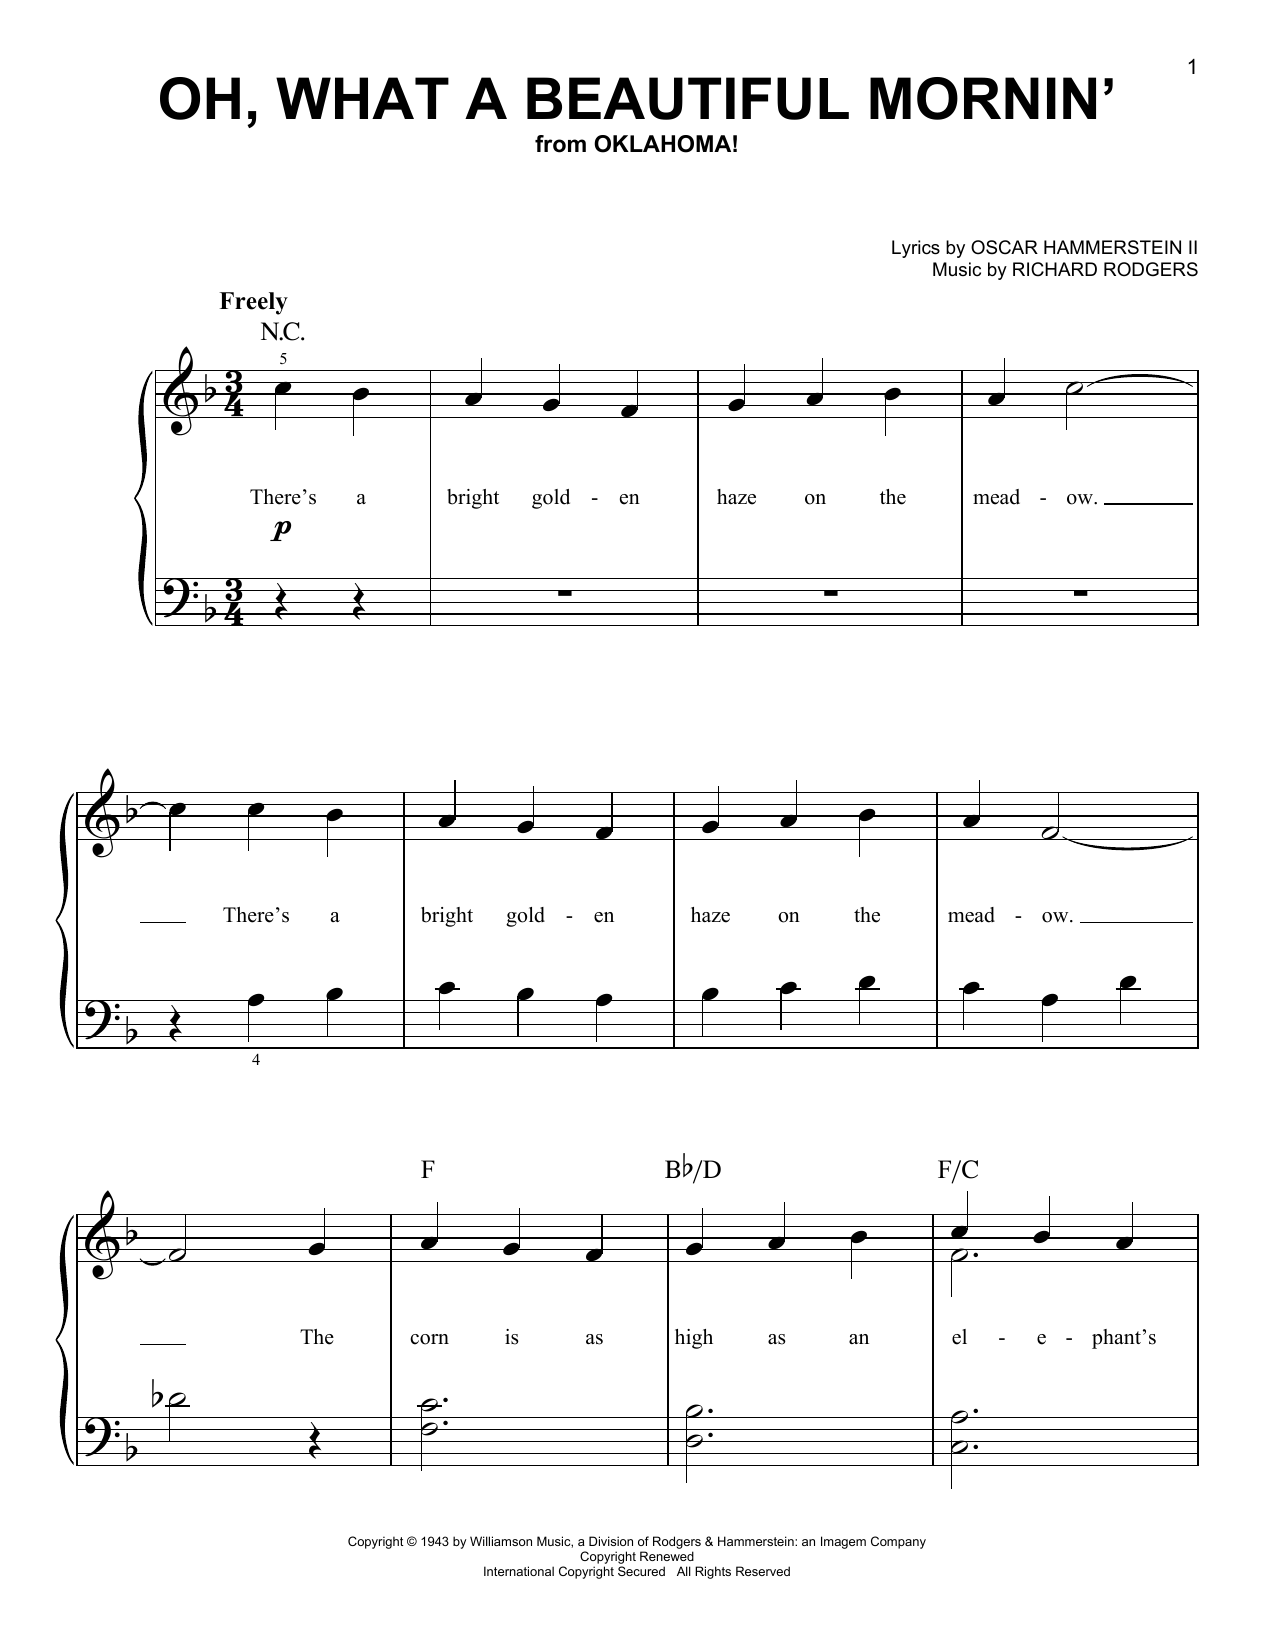 Oh what a beautiful mornin 39 sheet music direct for 1 2 34 get on the dance floor lyrics